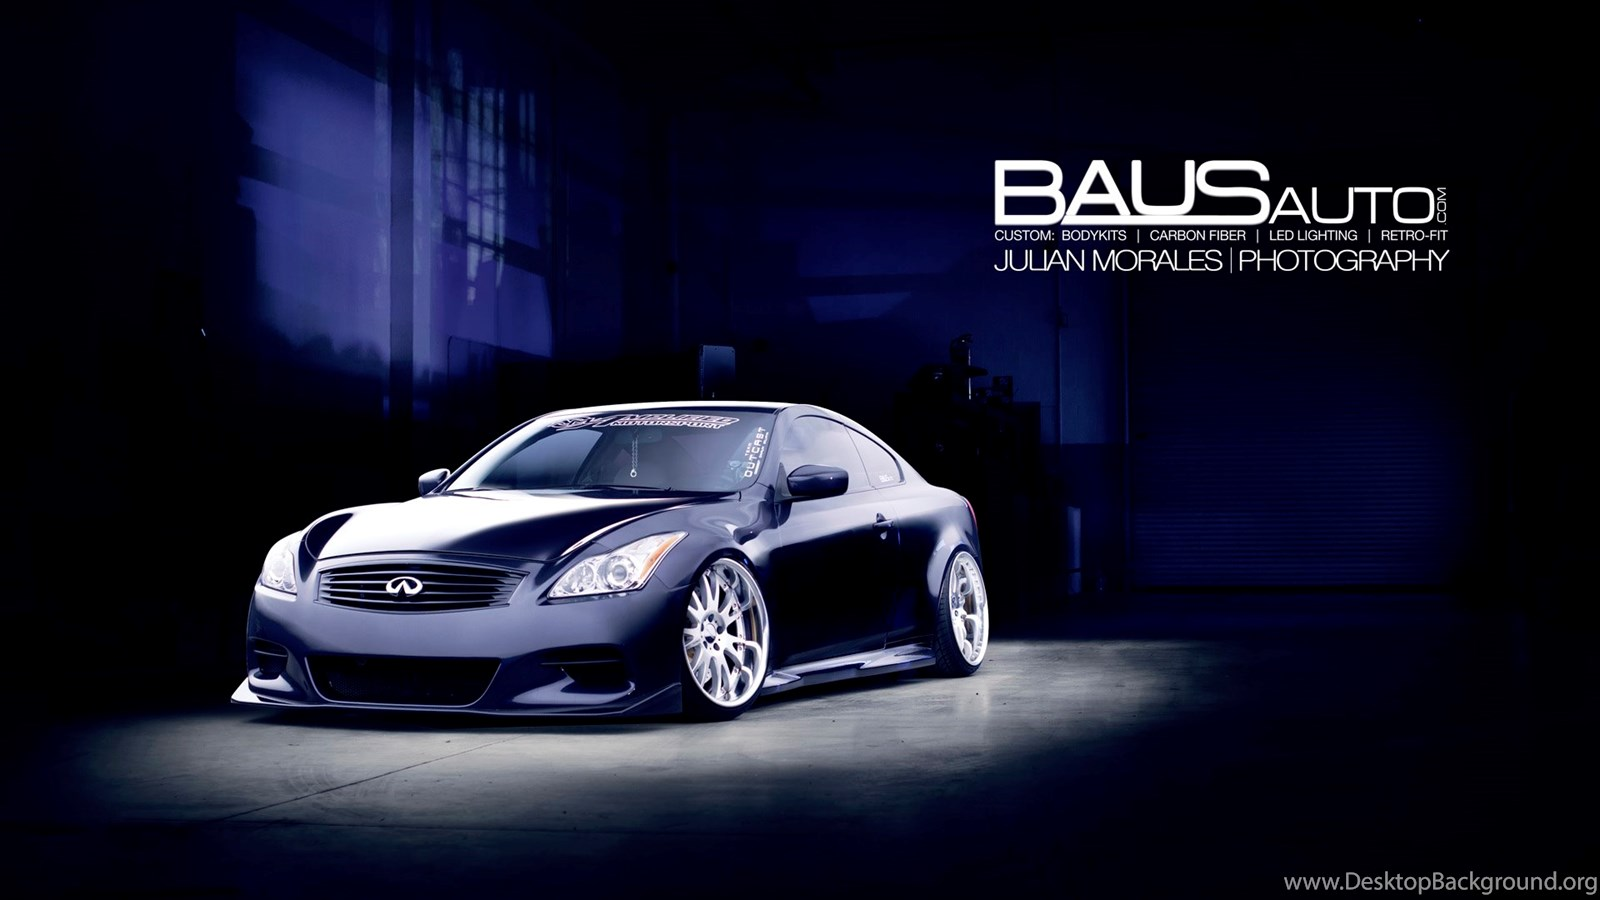 Infiniti G37 Coupe Slammed Infiniti G37 Coupe Wallpapers Johnywheels Desktop Background